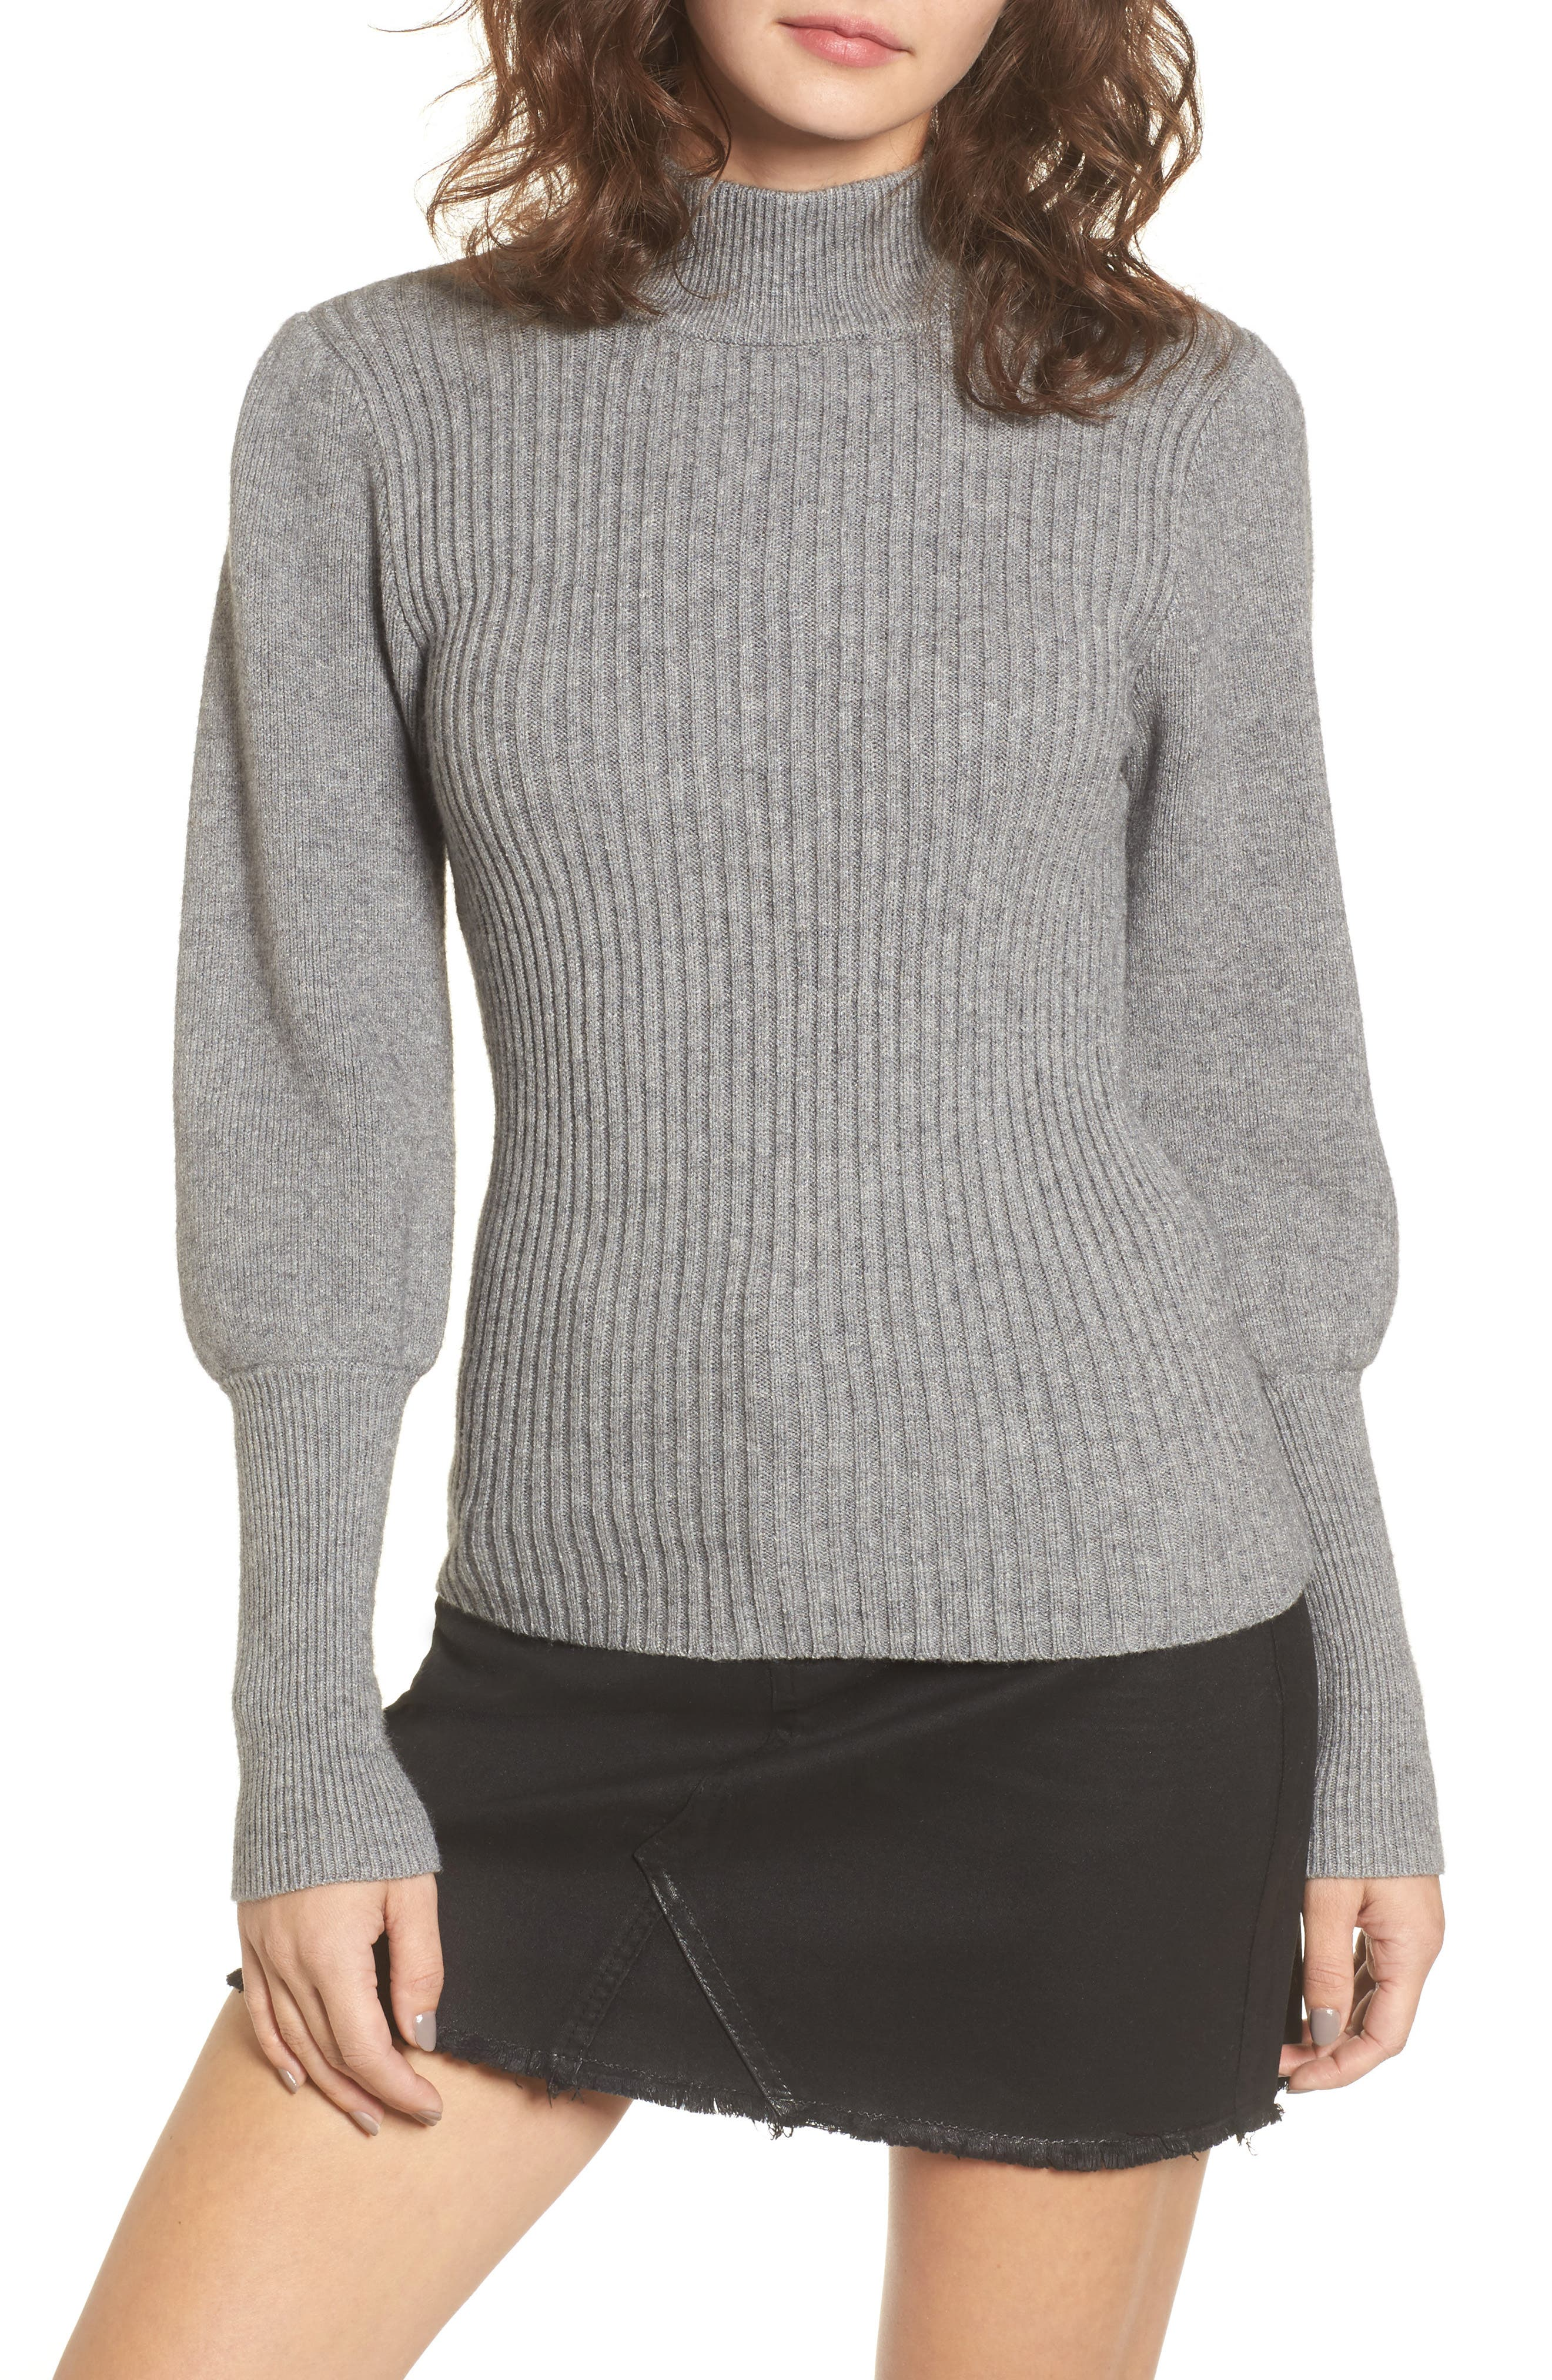 Alternate Image 1 Selected - MOON RIVER Puff Sleeve Sweater